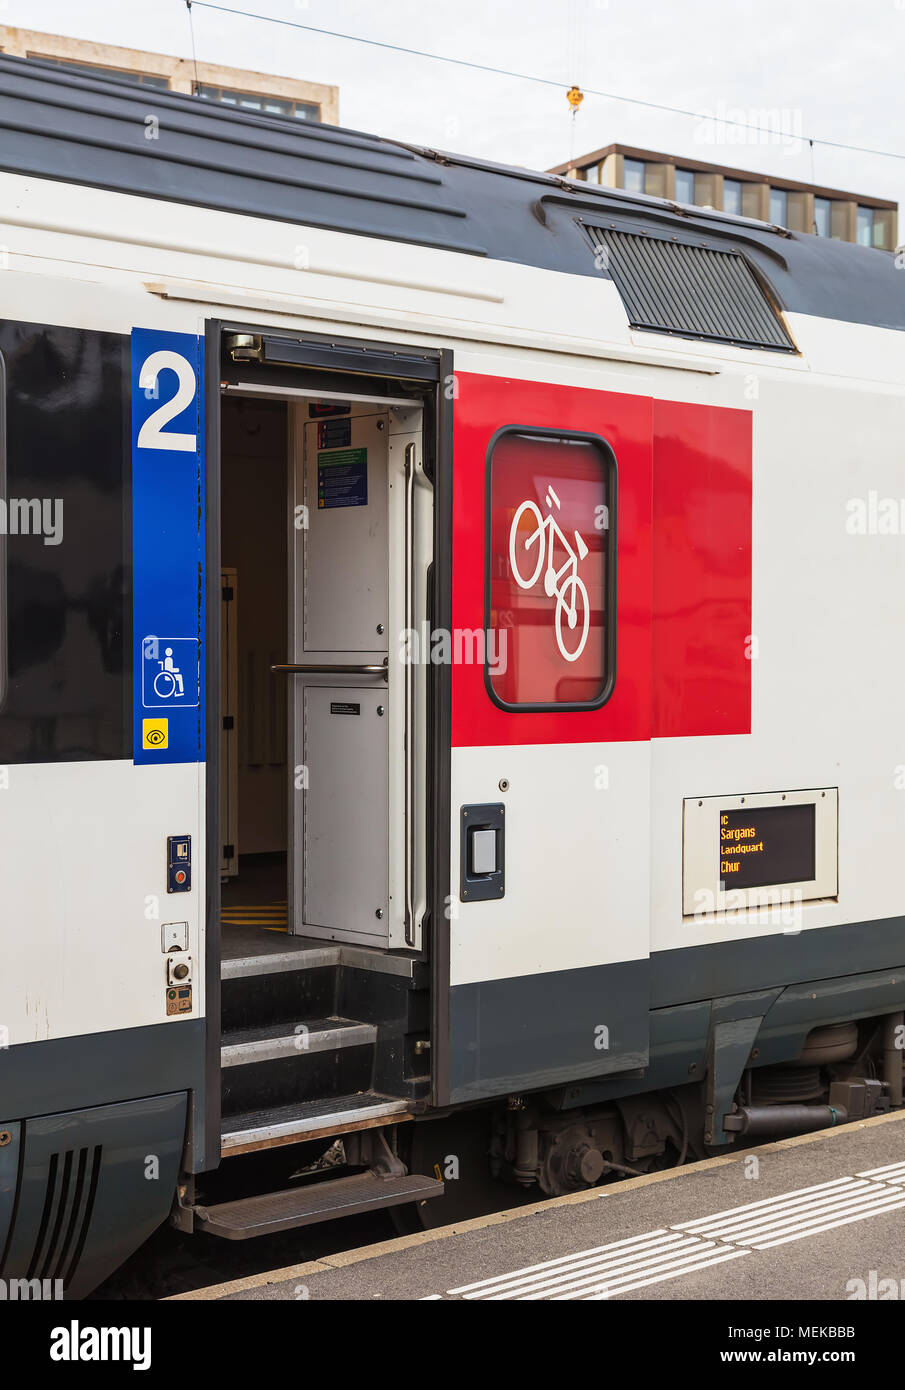 Zurich, Switzerland - 3 March, 2017: a door of a railroad car of a passenger train of the Swiss Federal Railways standing at a platform of the Zurich  - Stock Image